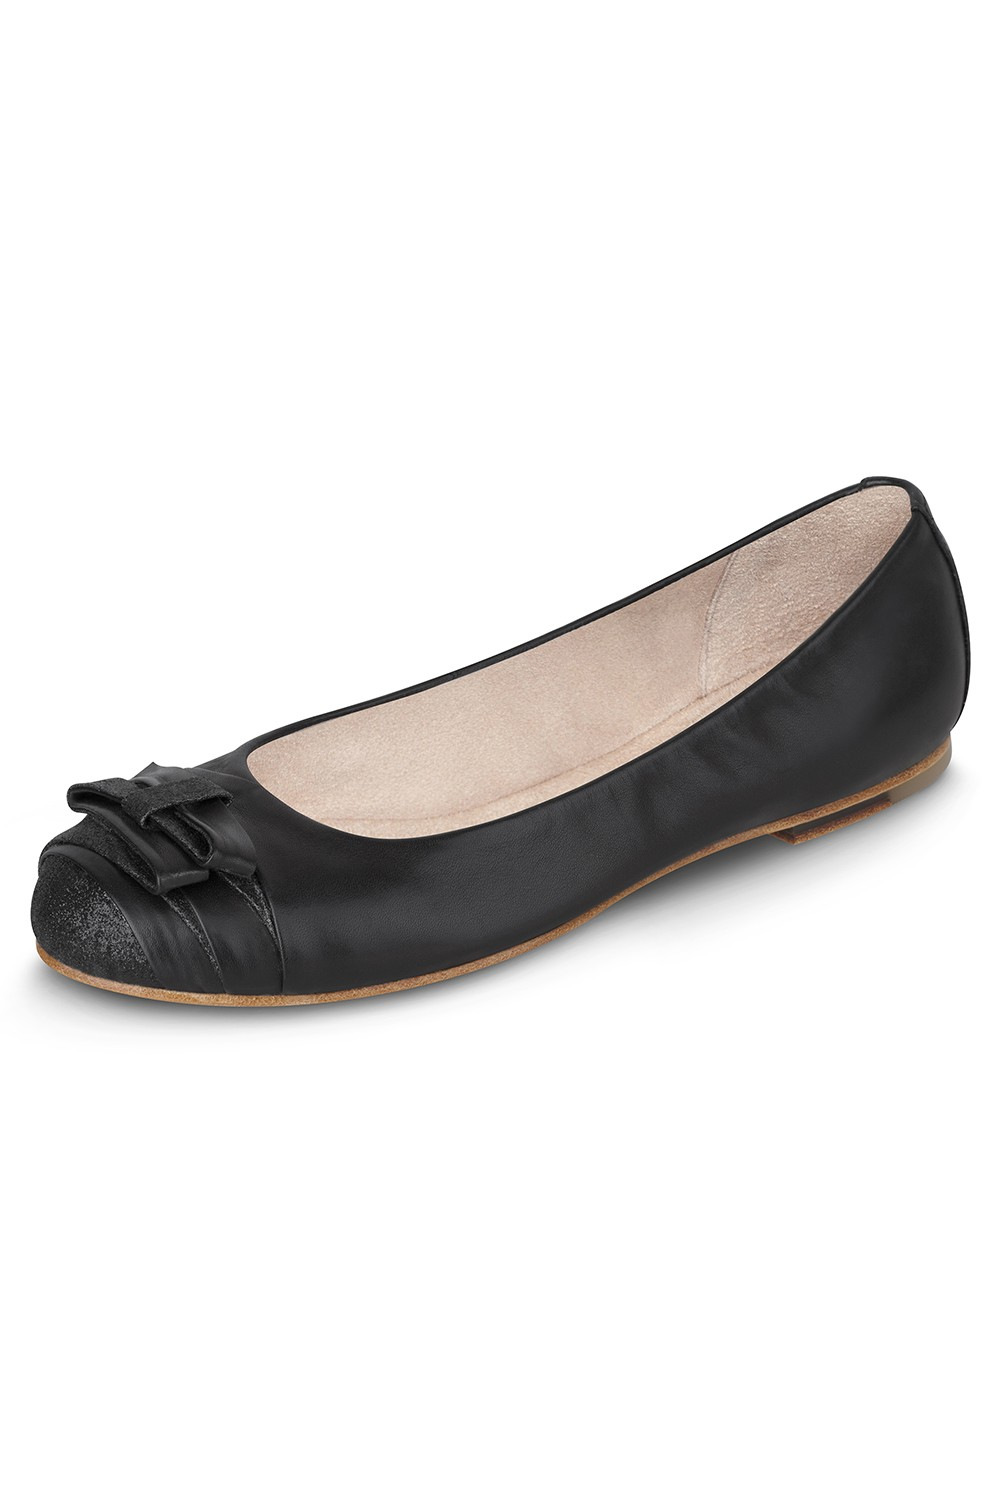 Cecile Ladies Ballet Flat Womens Fashion Shoes